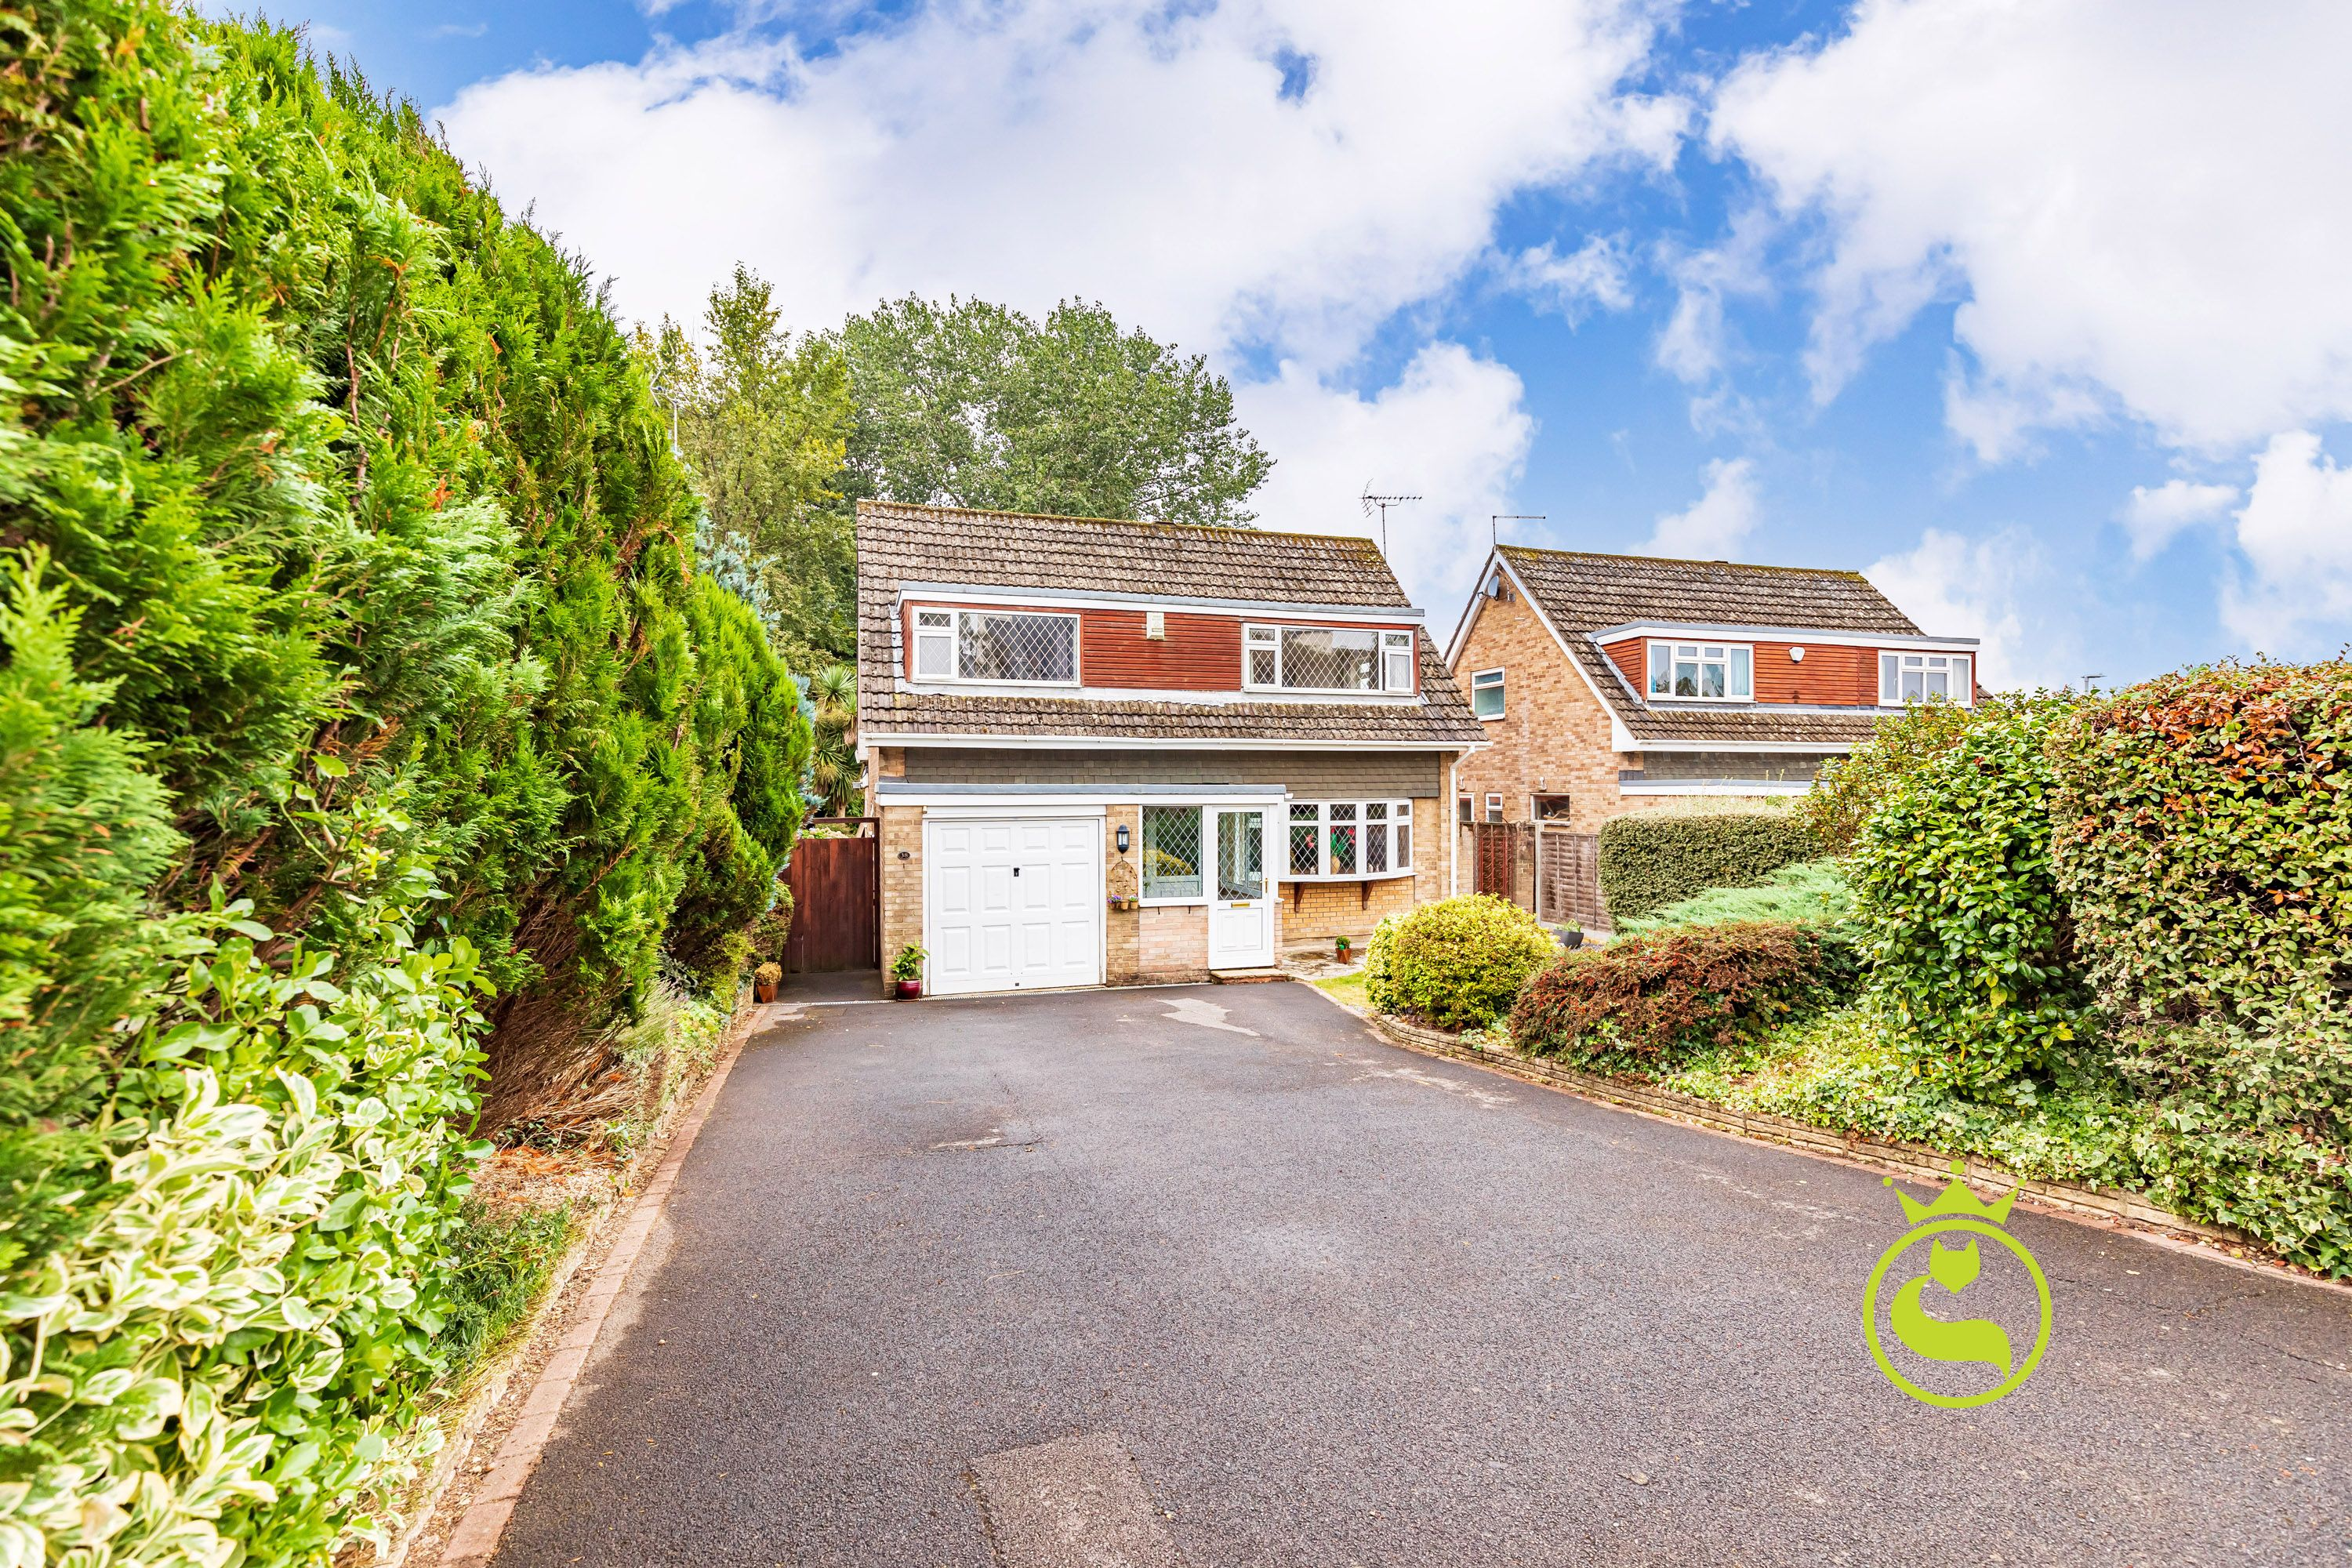 **LAUNCHING SATURDAY 25TH SEPTEMBER (FULLY BOOKED) & LUNCHTIME MONDAY 27TH SEPTEMBER- BY APPOINTMENT ONLY** A substantial well presented four bedroom detached family size house boasting a large rear extension. Situated in a popular location within easy reach of local schools & amenities.